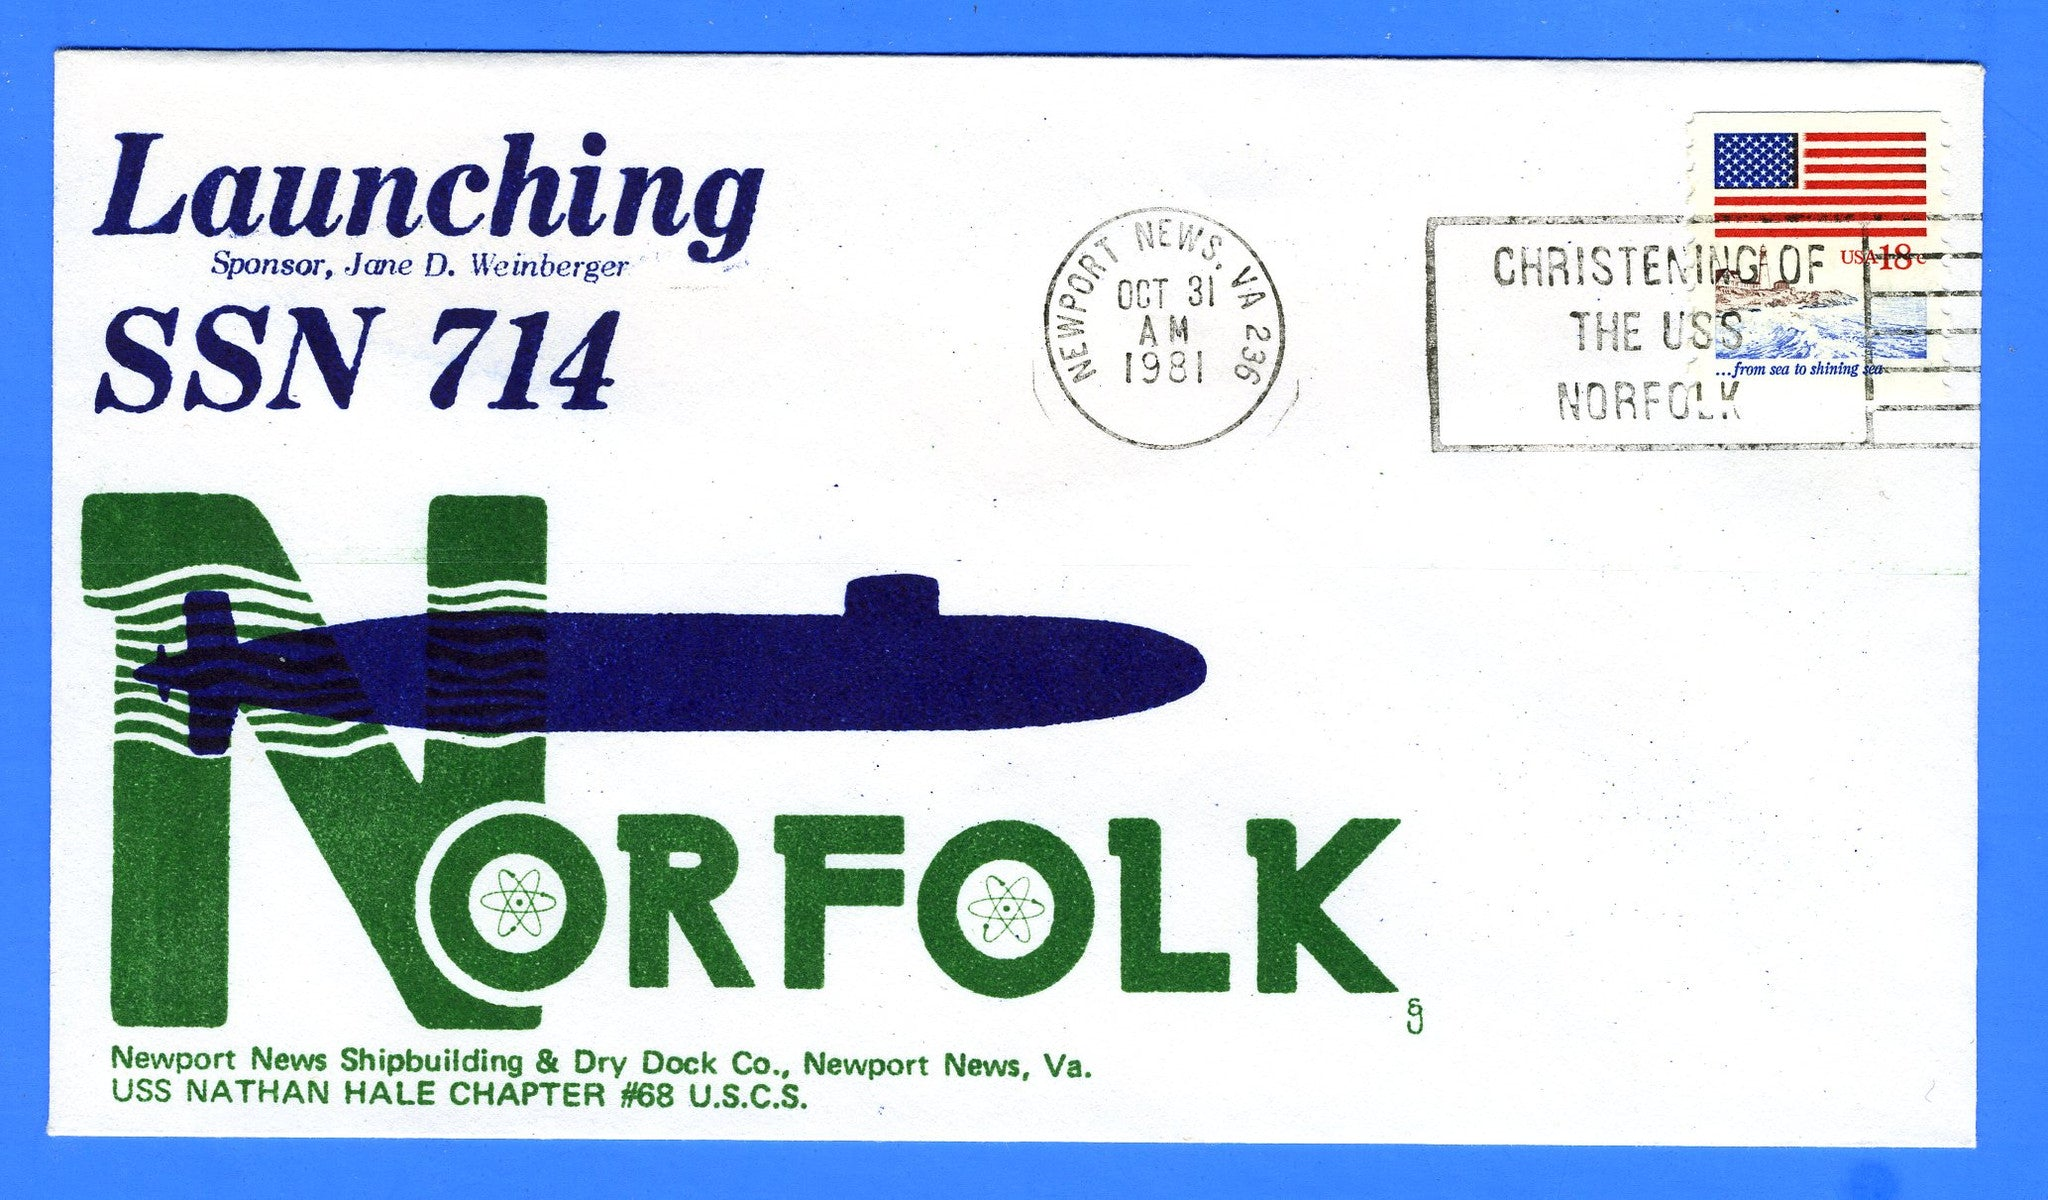 USS Norfolk SSN-714 Launched October 31, 1981